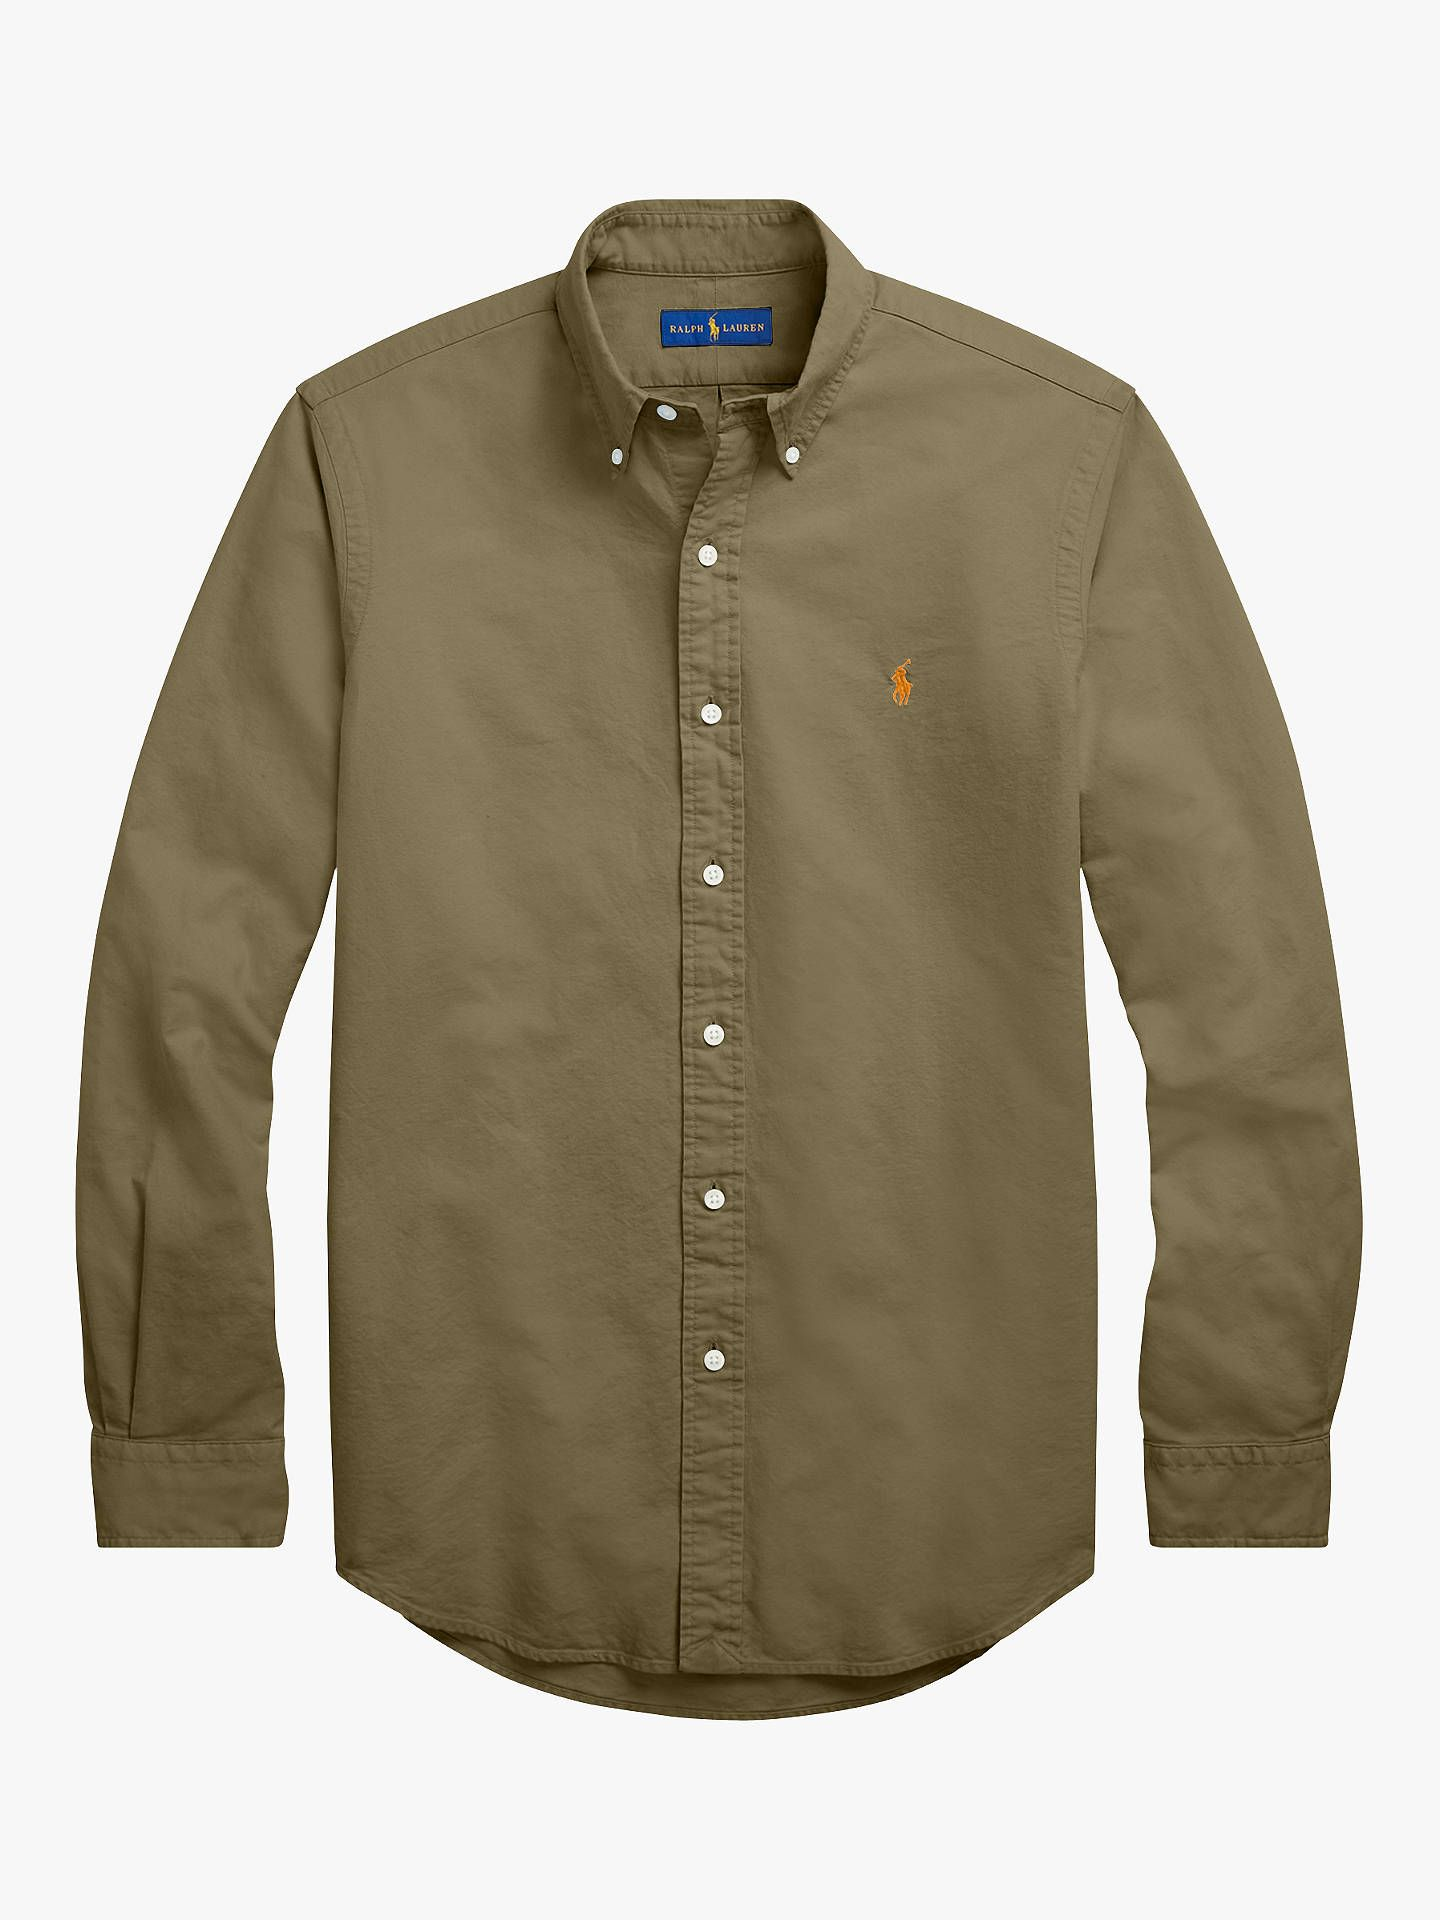 cc59612a4 BuyPolo Ralph Lauren Slim Fit Oxford Shirt, Service Green, S Online at  johnlewis.com